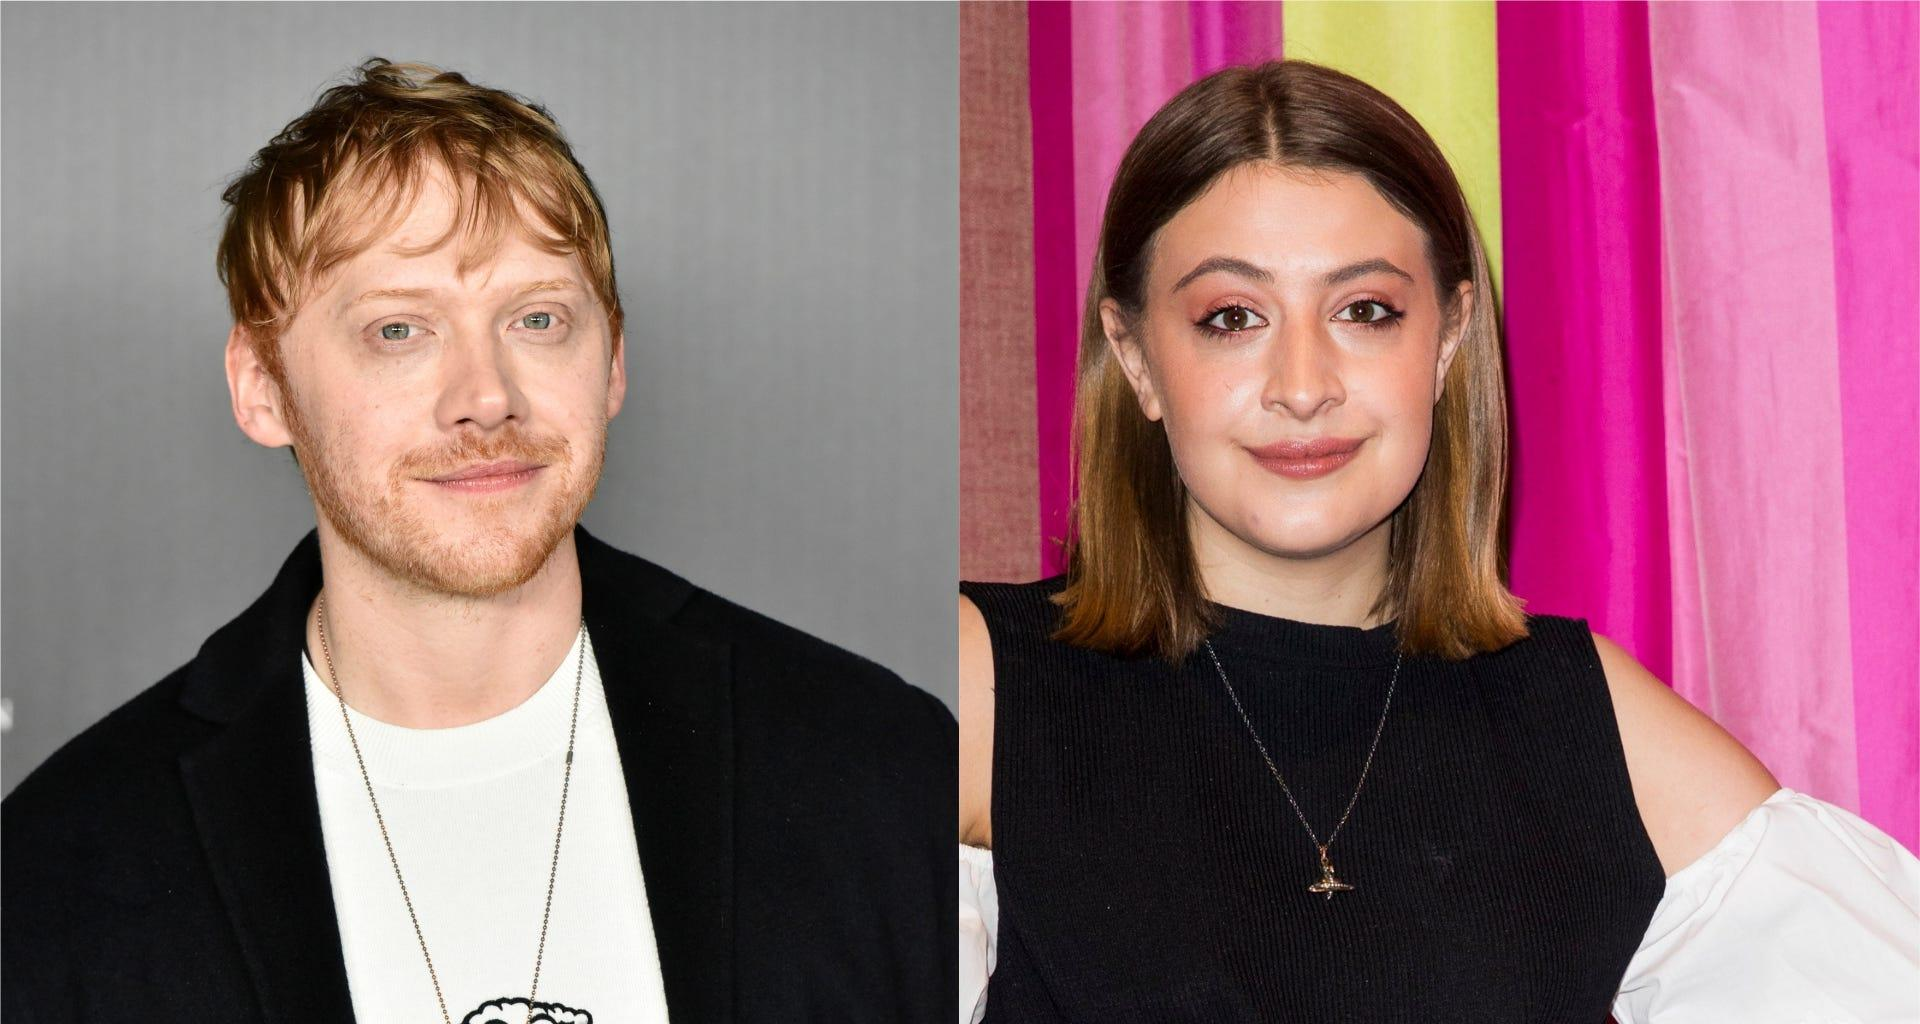 Rupert Grint And Georgia Groome Officially First-Time Parents After She Gives Birth To Their Baby!